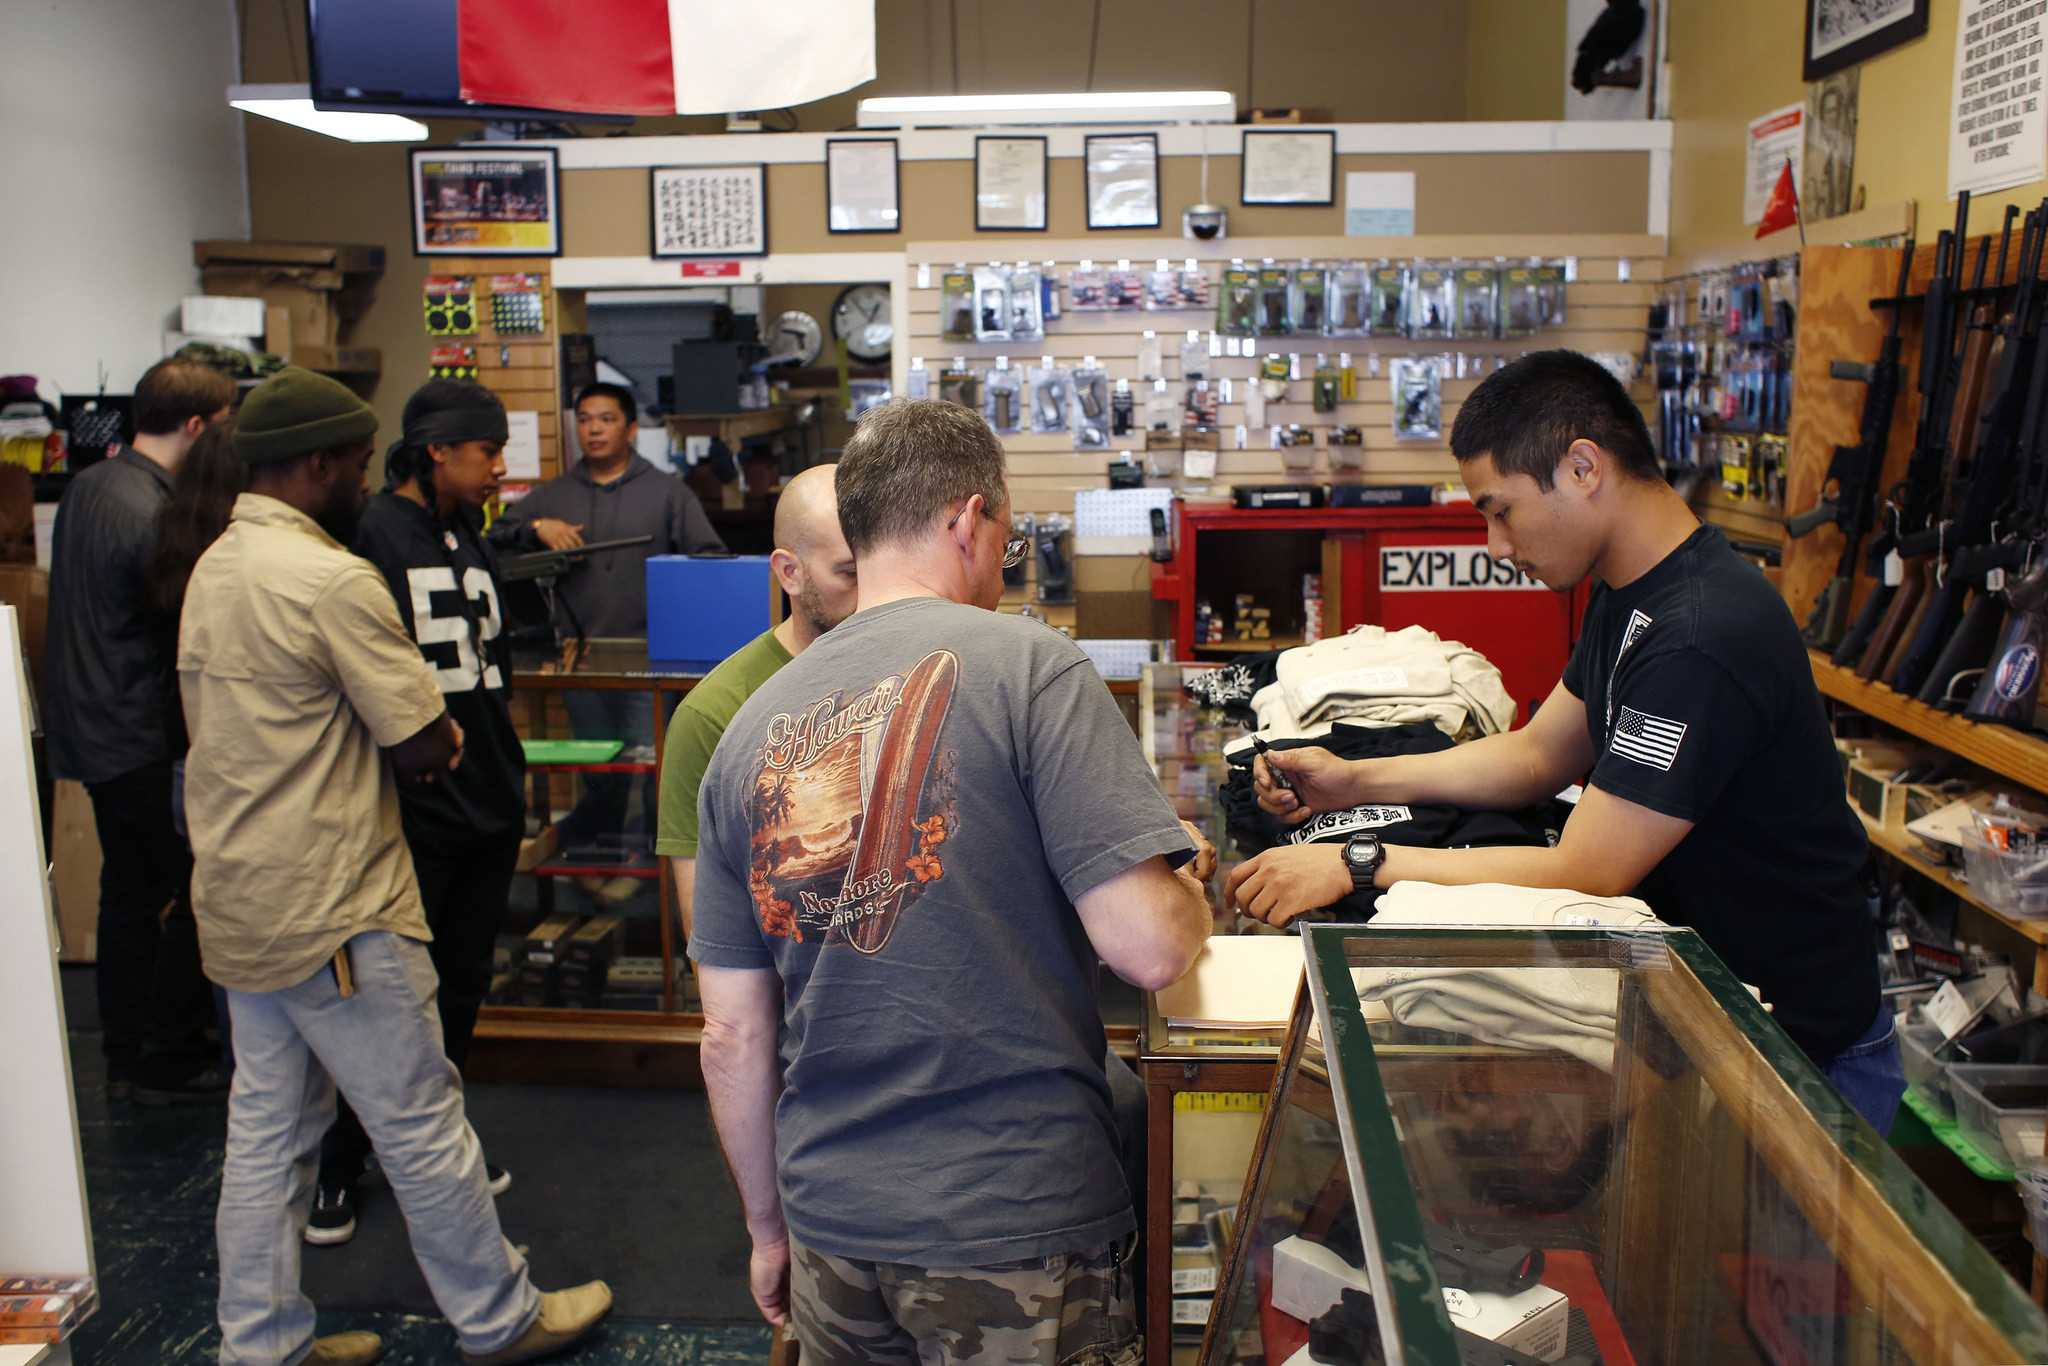 Customers visit Higher Bridge Arms Inc., the last gun shop in San Francisco Sunday, Oct. 4, 2015. The store located in the Mission District will be permanently closing Oct. 31 due to the city's political climate of increased gun control regulations. (Emma Chiang / Xpress)